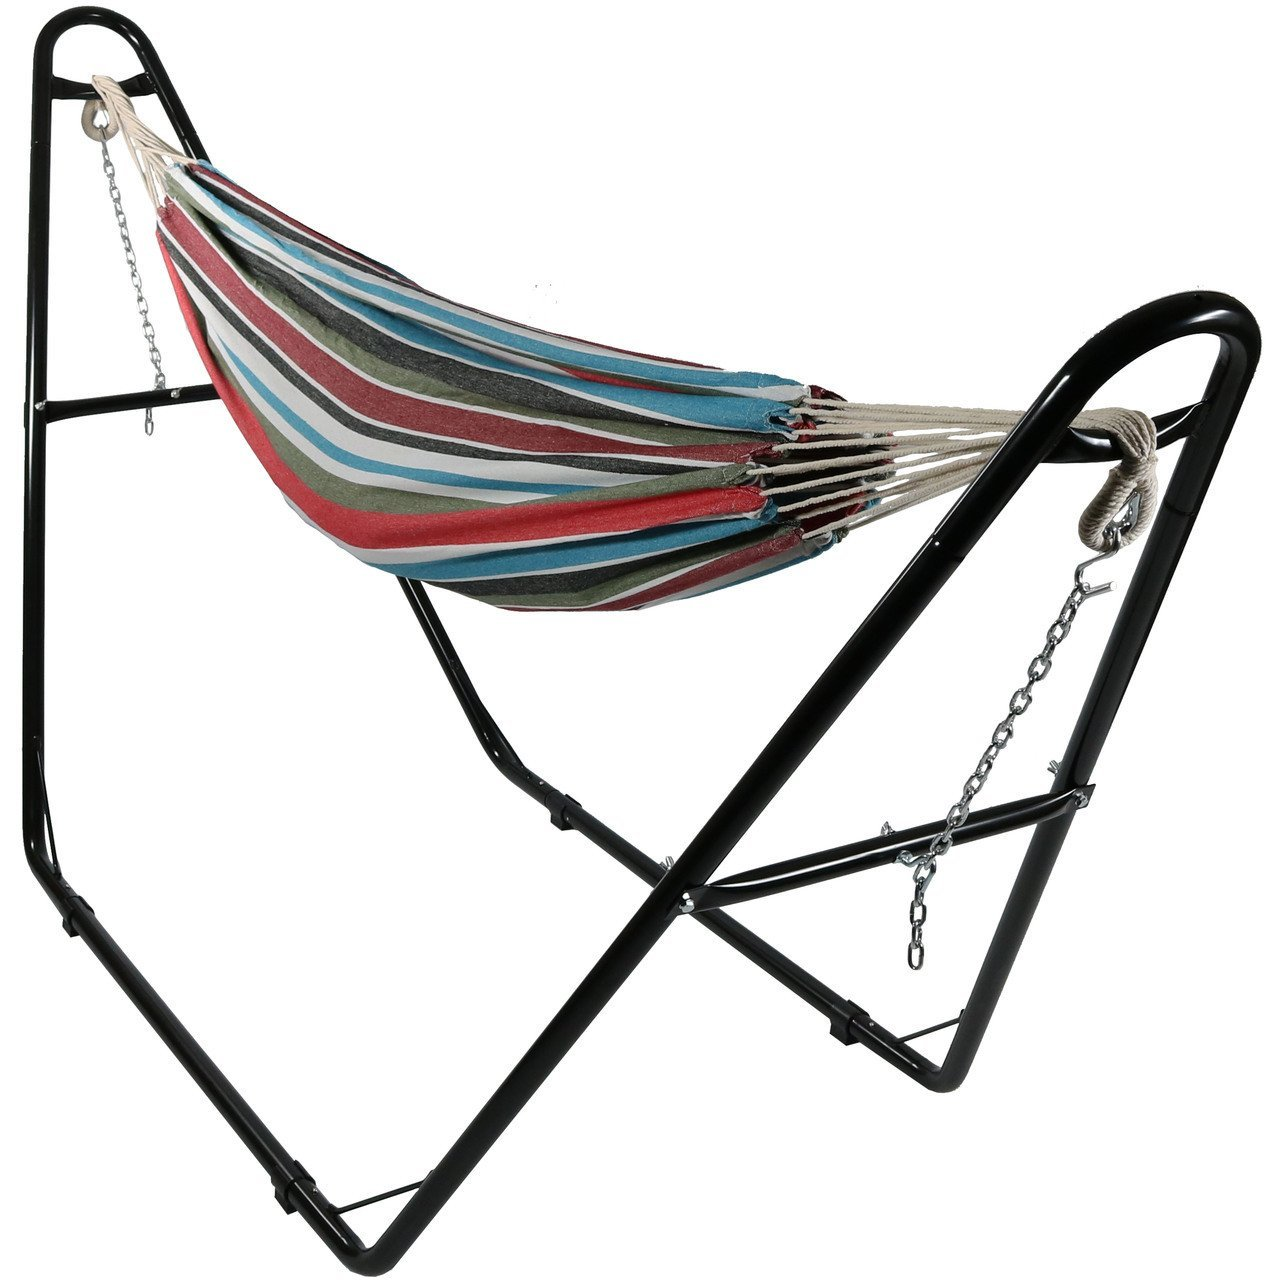 Sunnydaze Brazilian 2-Person Hammock with Universal Multi-Use Steel Stand, for Indoor or Outdoor Use, Cool Breeze, 440 Pound Capacity